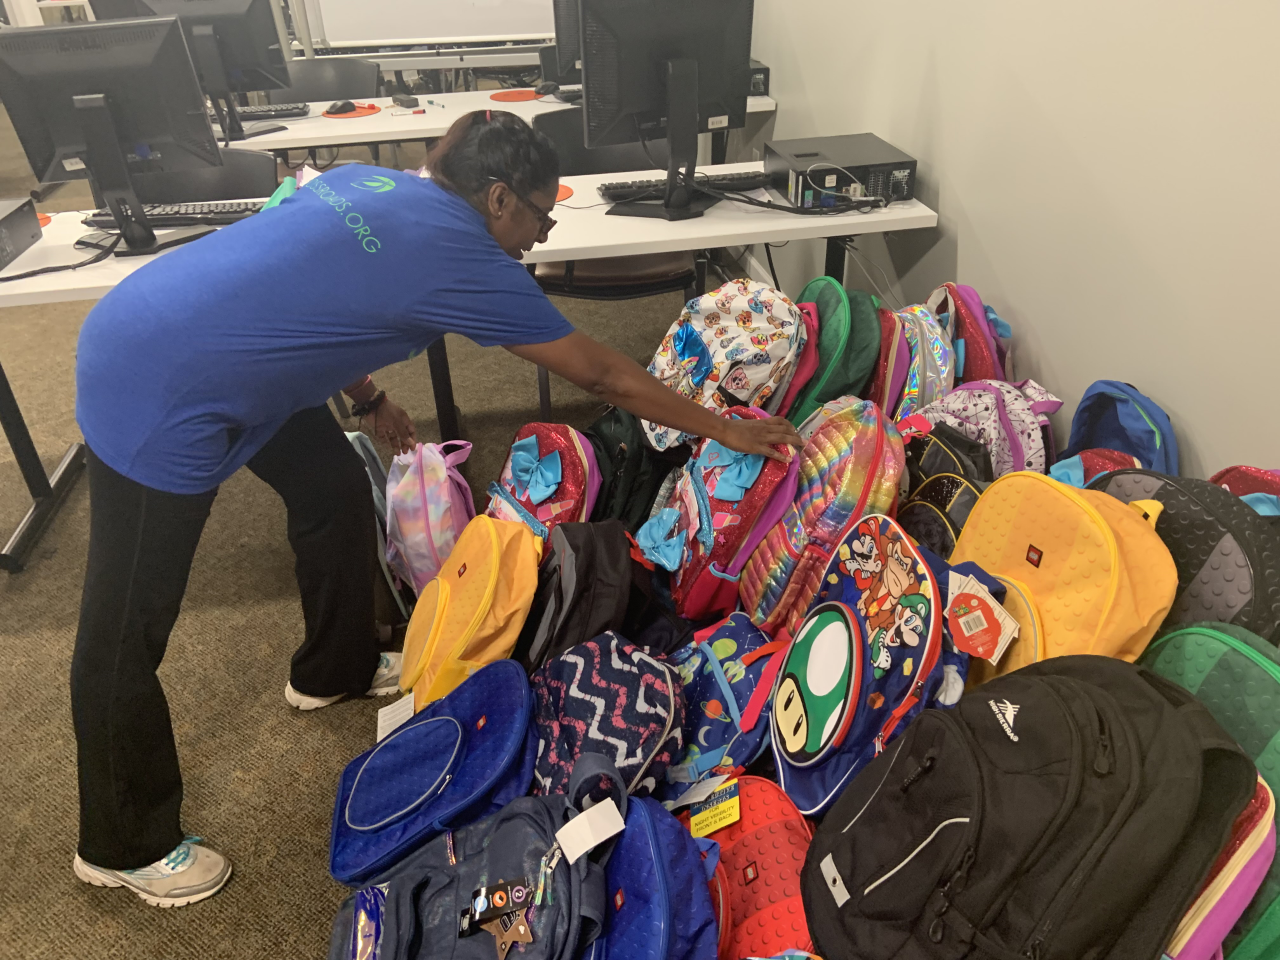 Durham Rescue Mission gives away backpacks, groceries